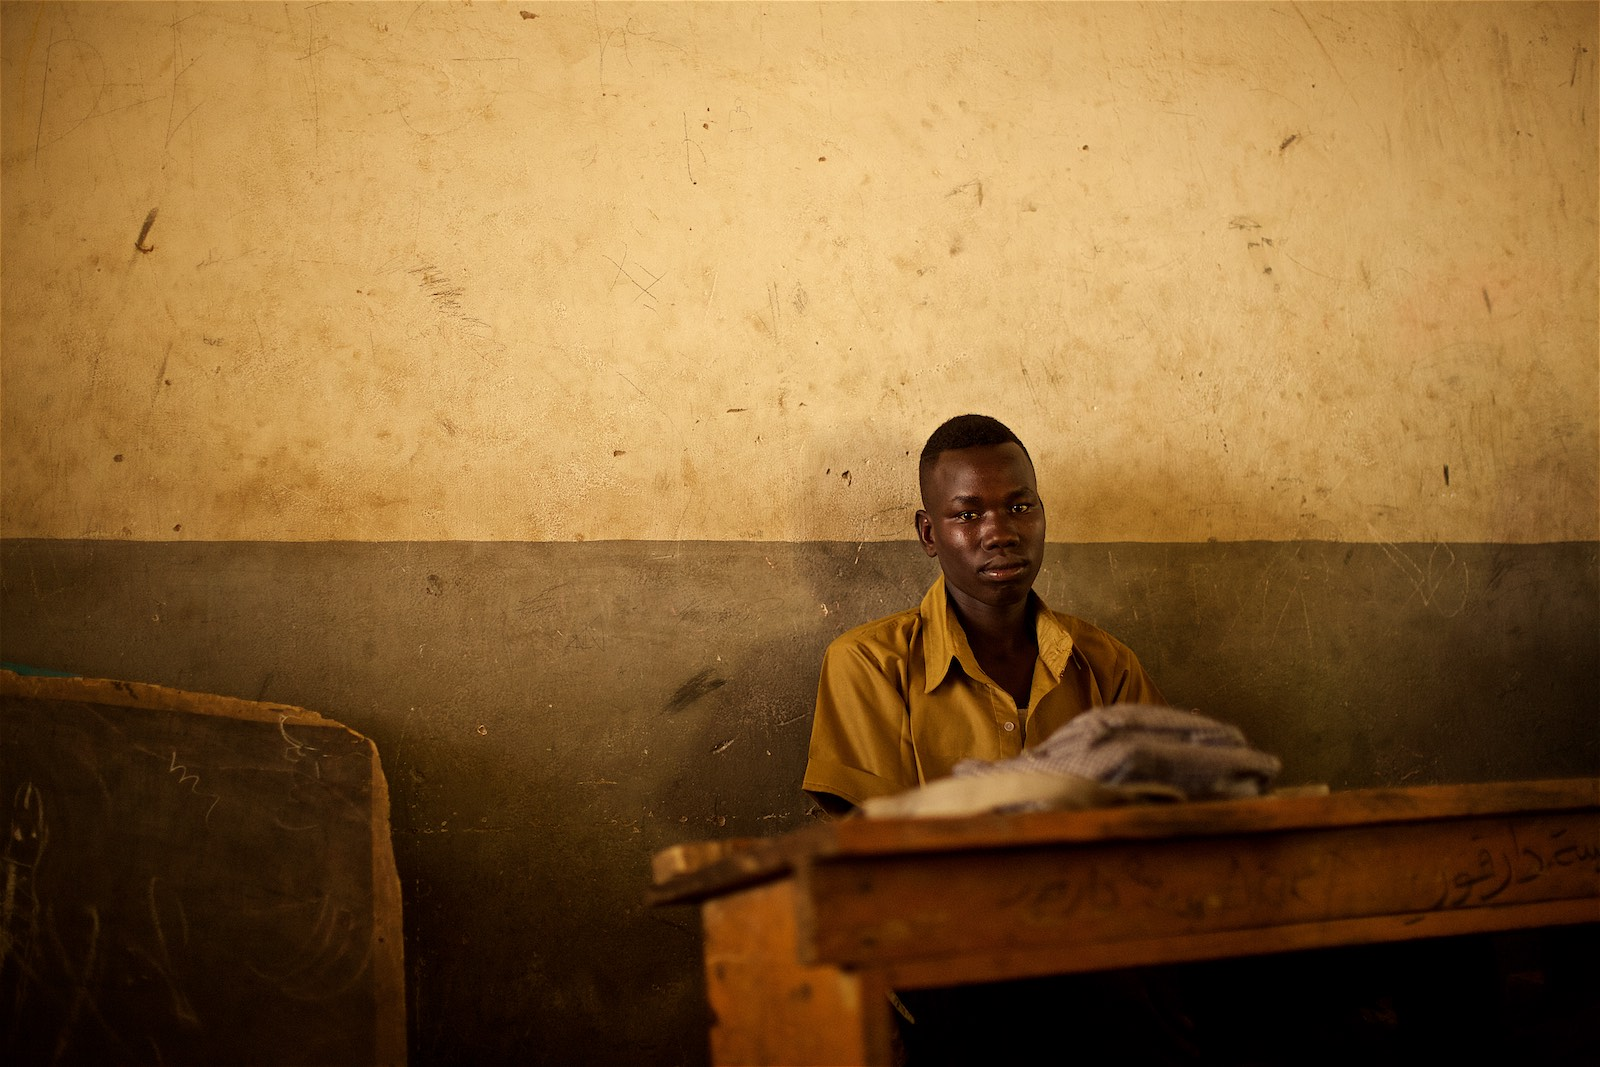 denis-bosnic-chad-school-jrs-jesuit-refugee-service-students-education-mercy-in-motion-21.jpg